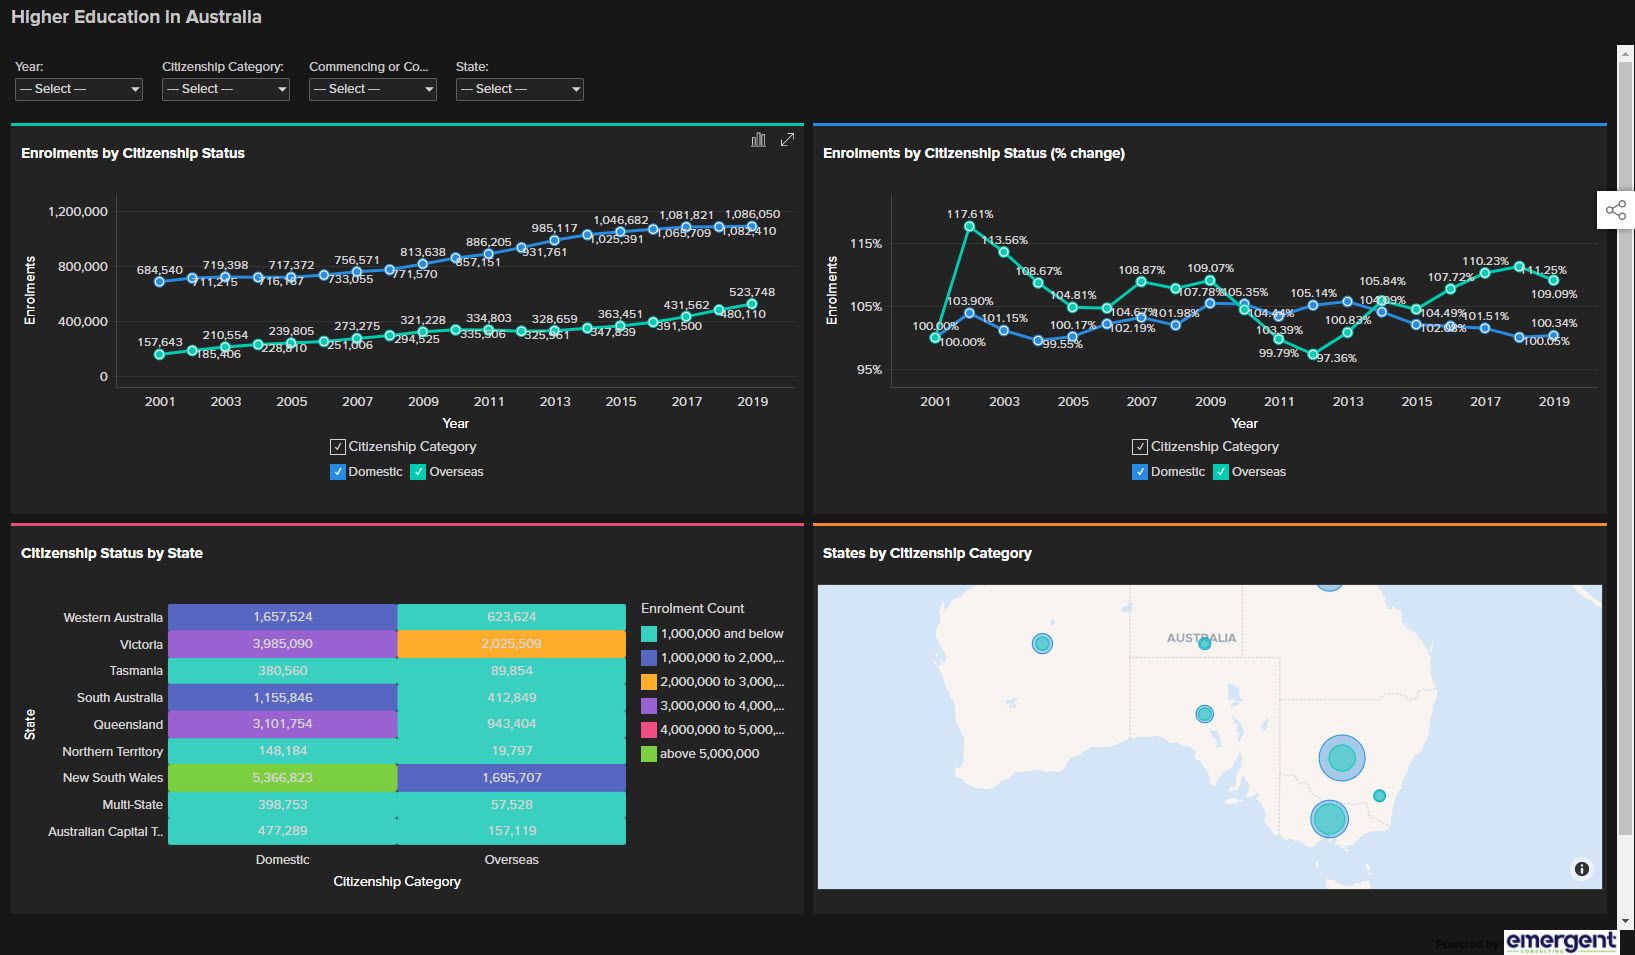 Higher Education Dashboard